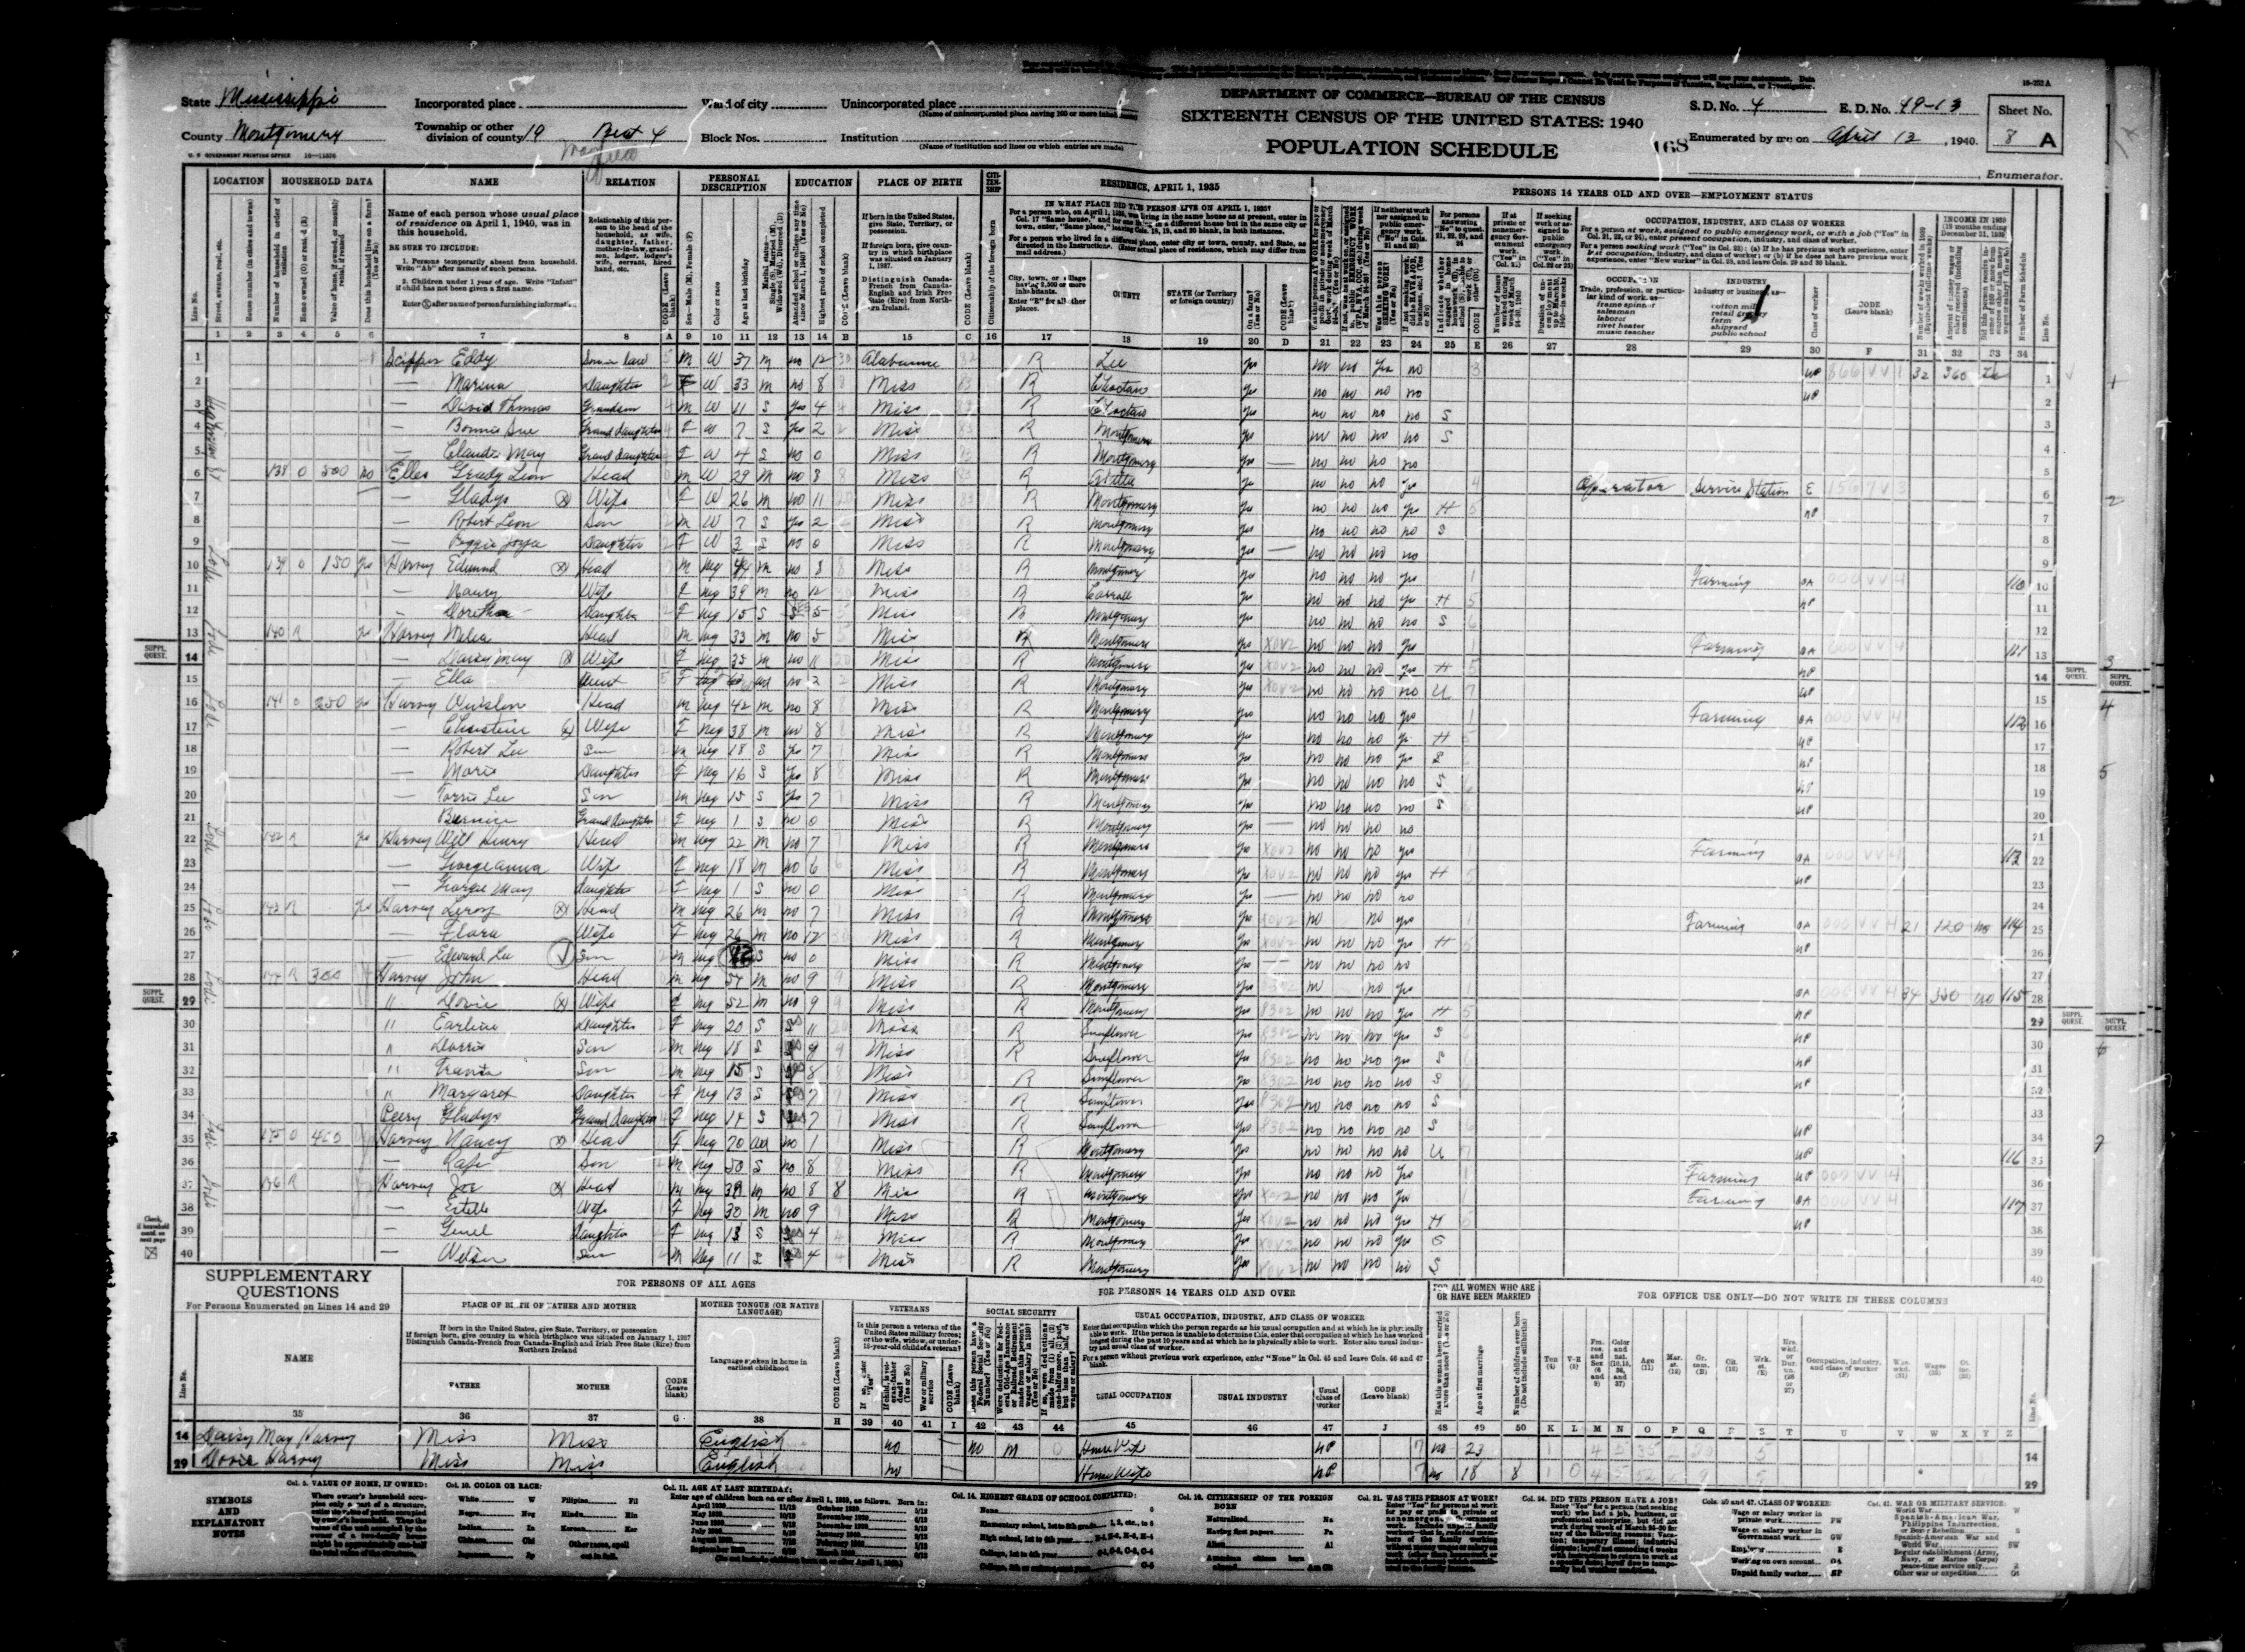 1940 Pop. Census Schedule for Mississippi- Montgomery County